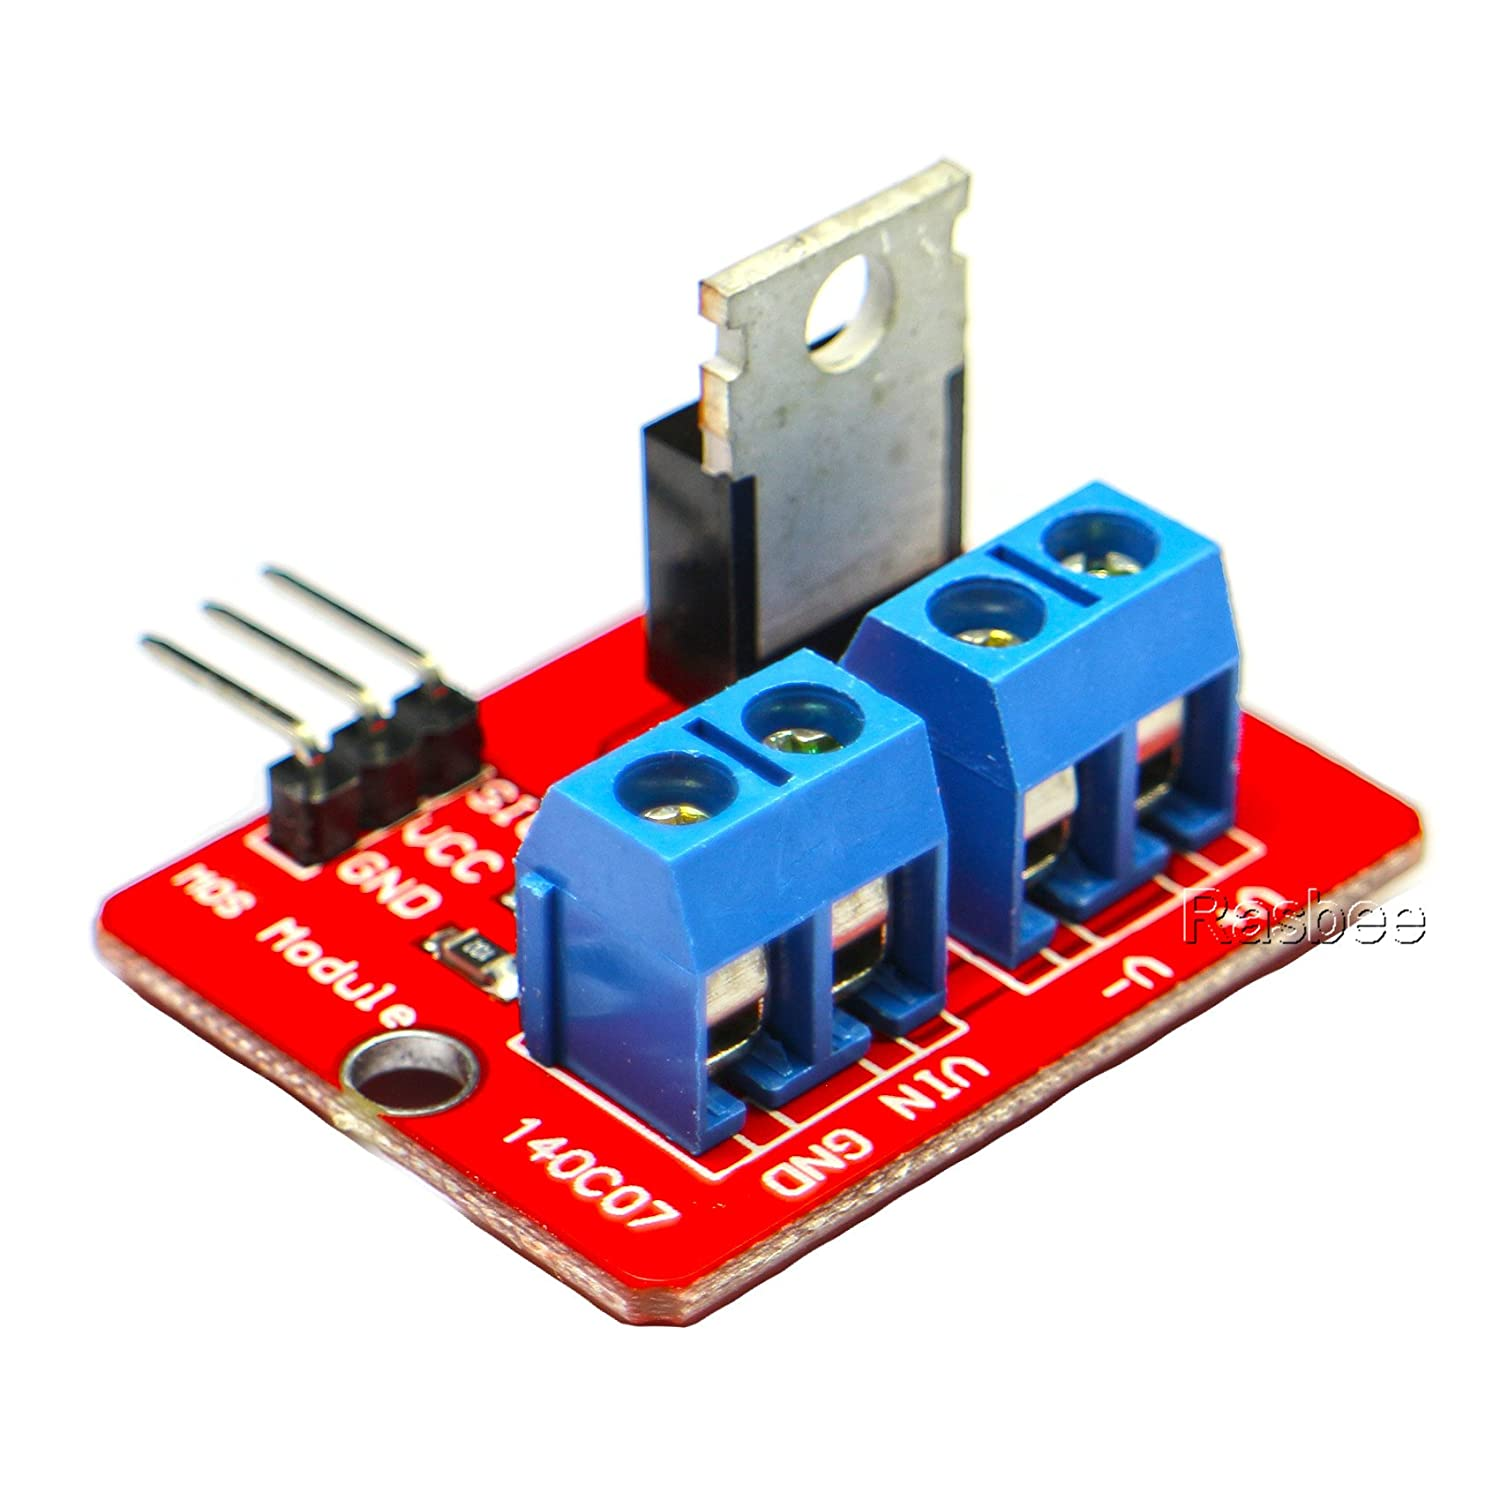 24v Fet Driver Isolated Unipolar Stepper Motor Circuit Izole Drivers Partstower Irf Mos Module Top Mosfet Button For Arduino Mcu Arm Raspberry Pi Electronics